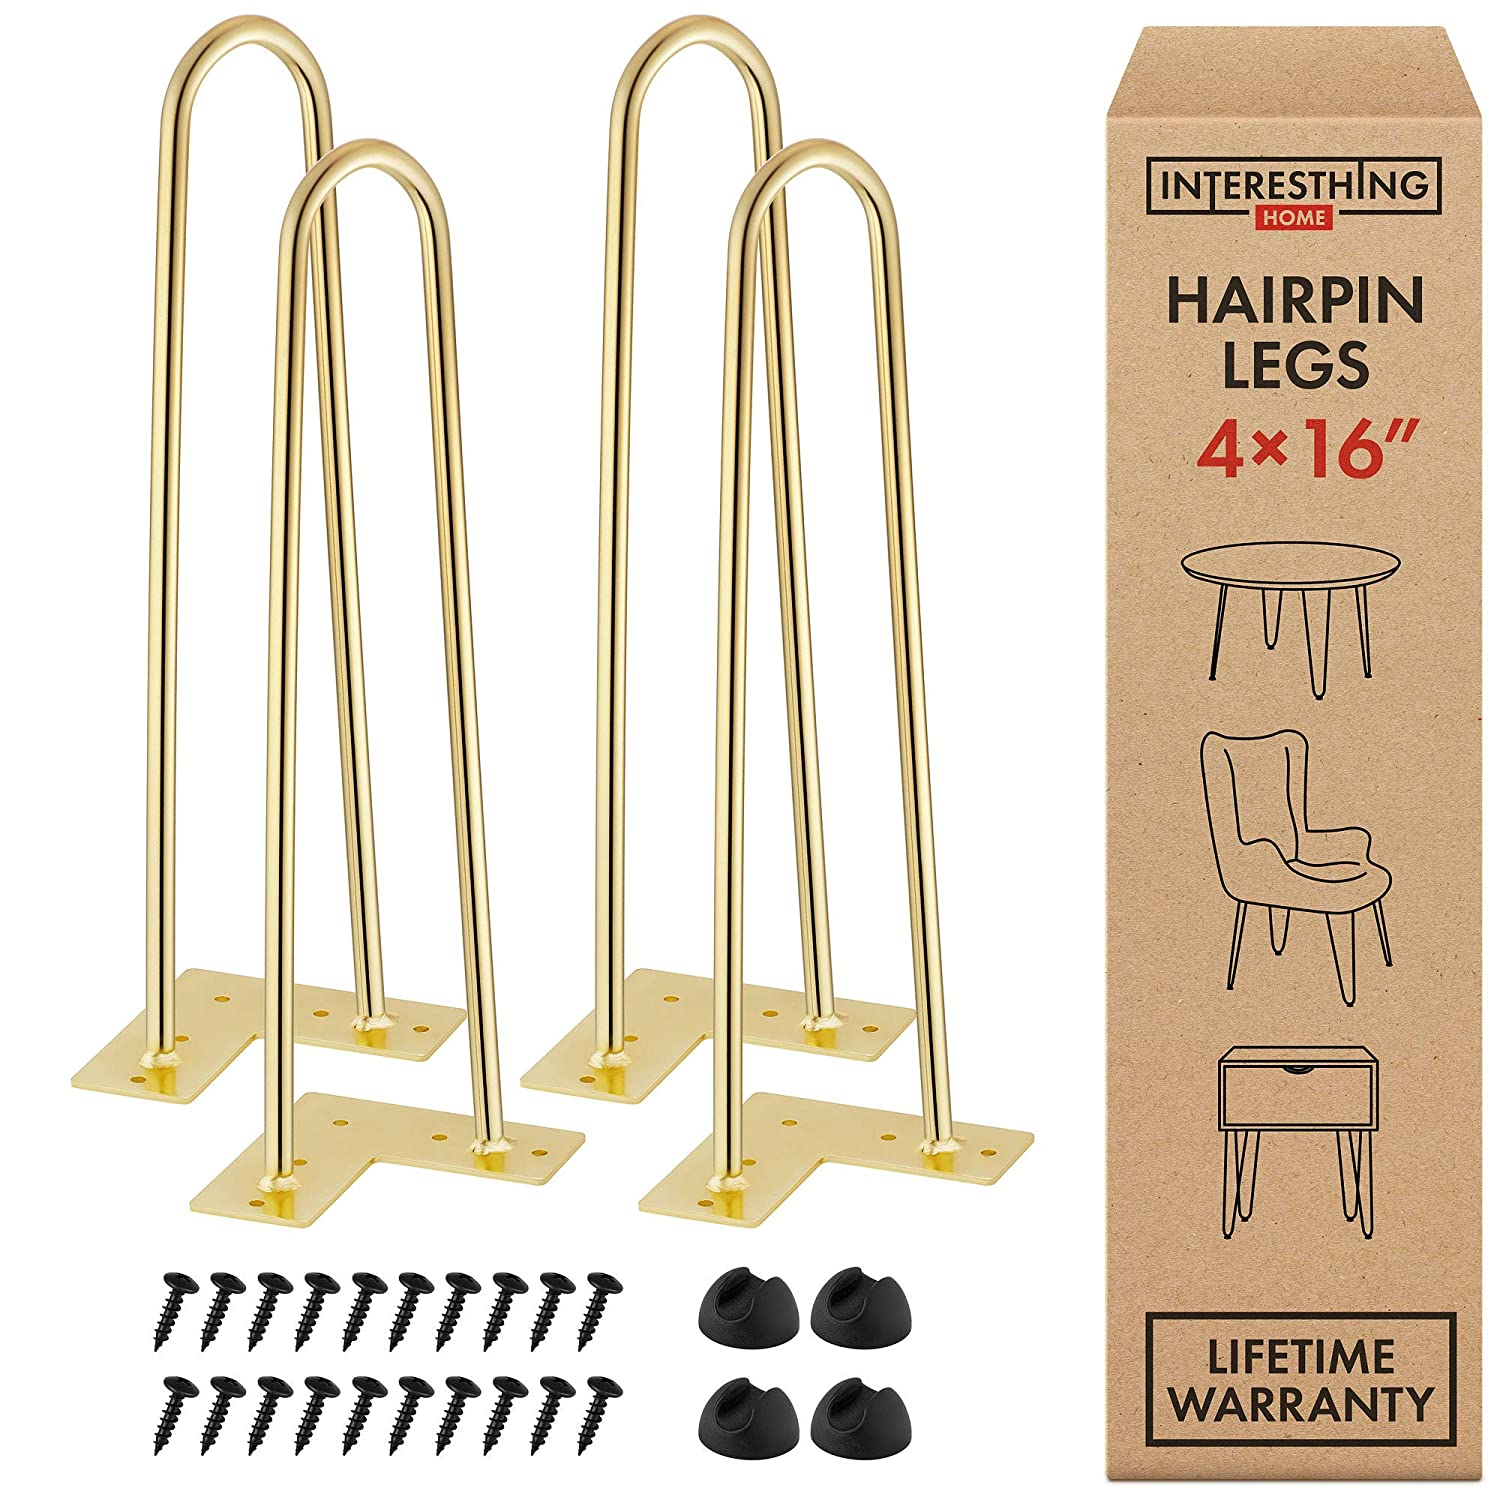 Interesthing Home Hairpin Legs for Coffee and End Tables, Chairs and Rubber Floor Protectors, 16 Inches, Gold